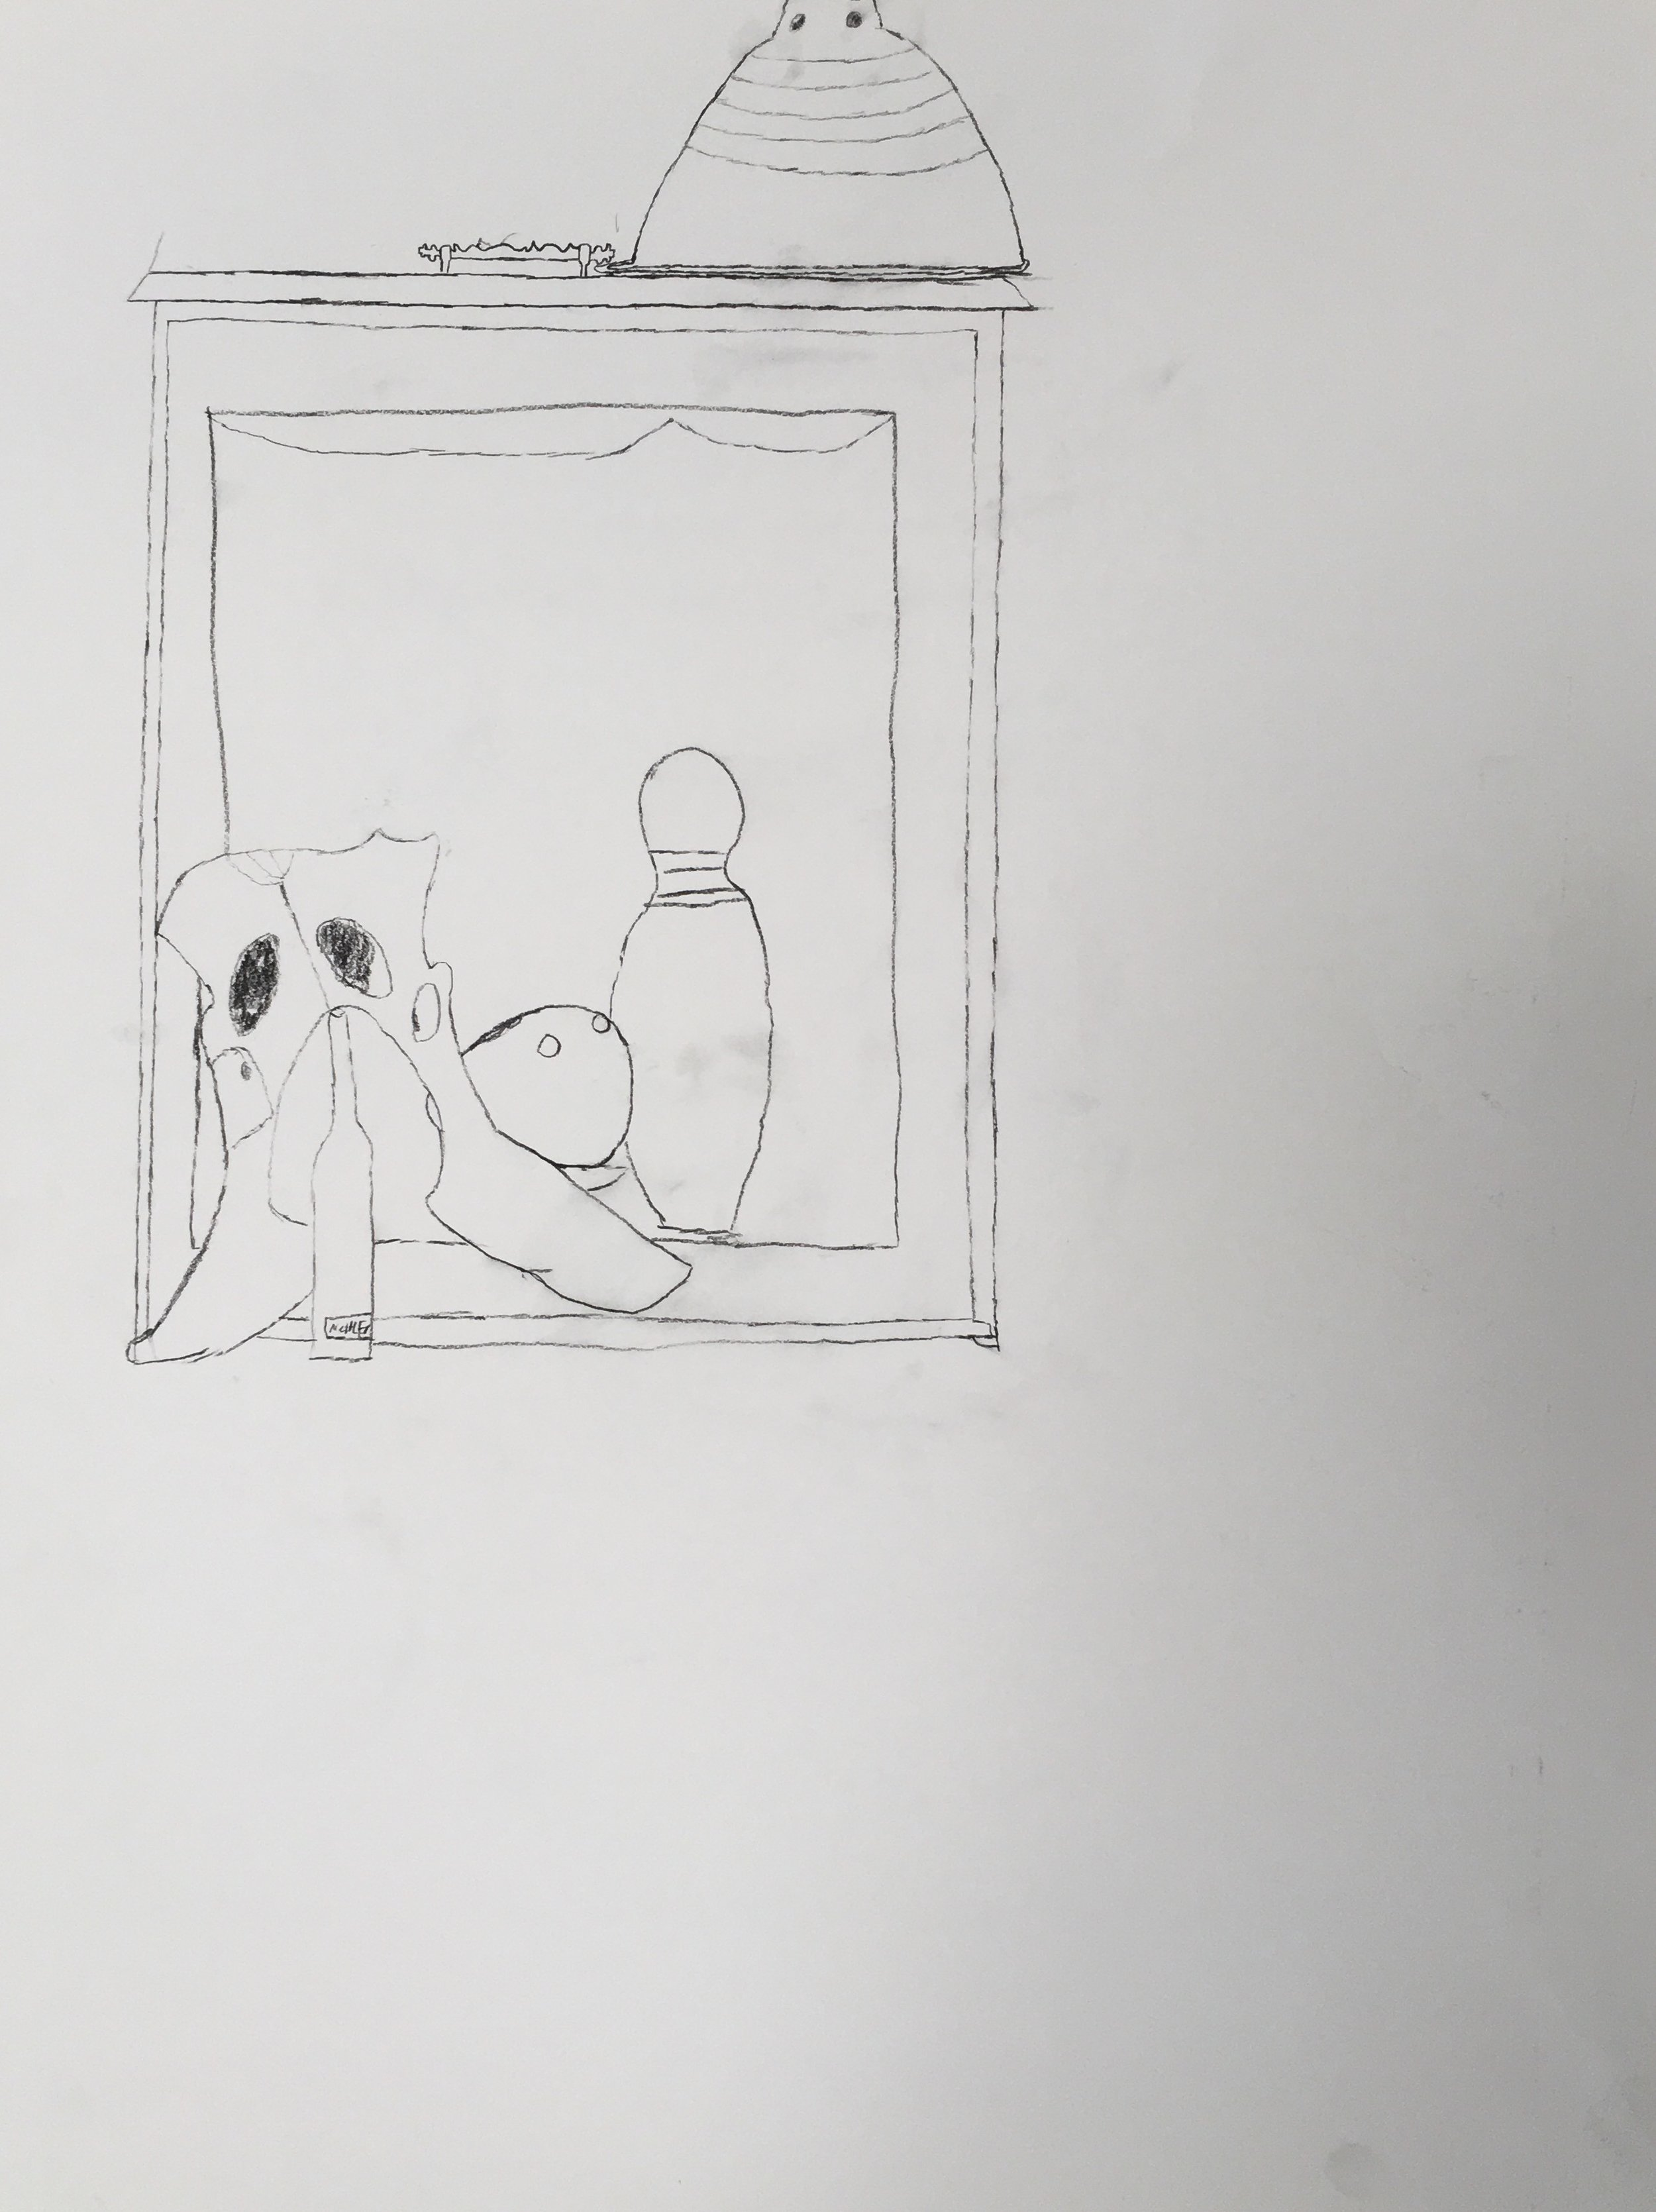 Student #2: Baseline Drawing